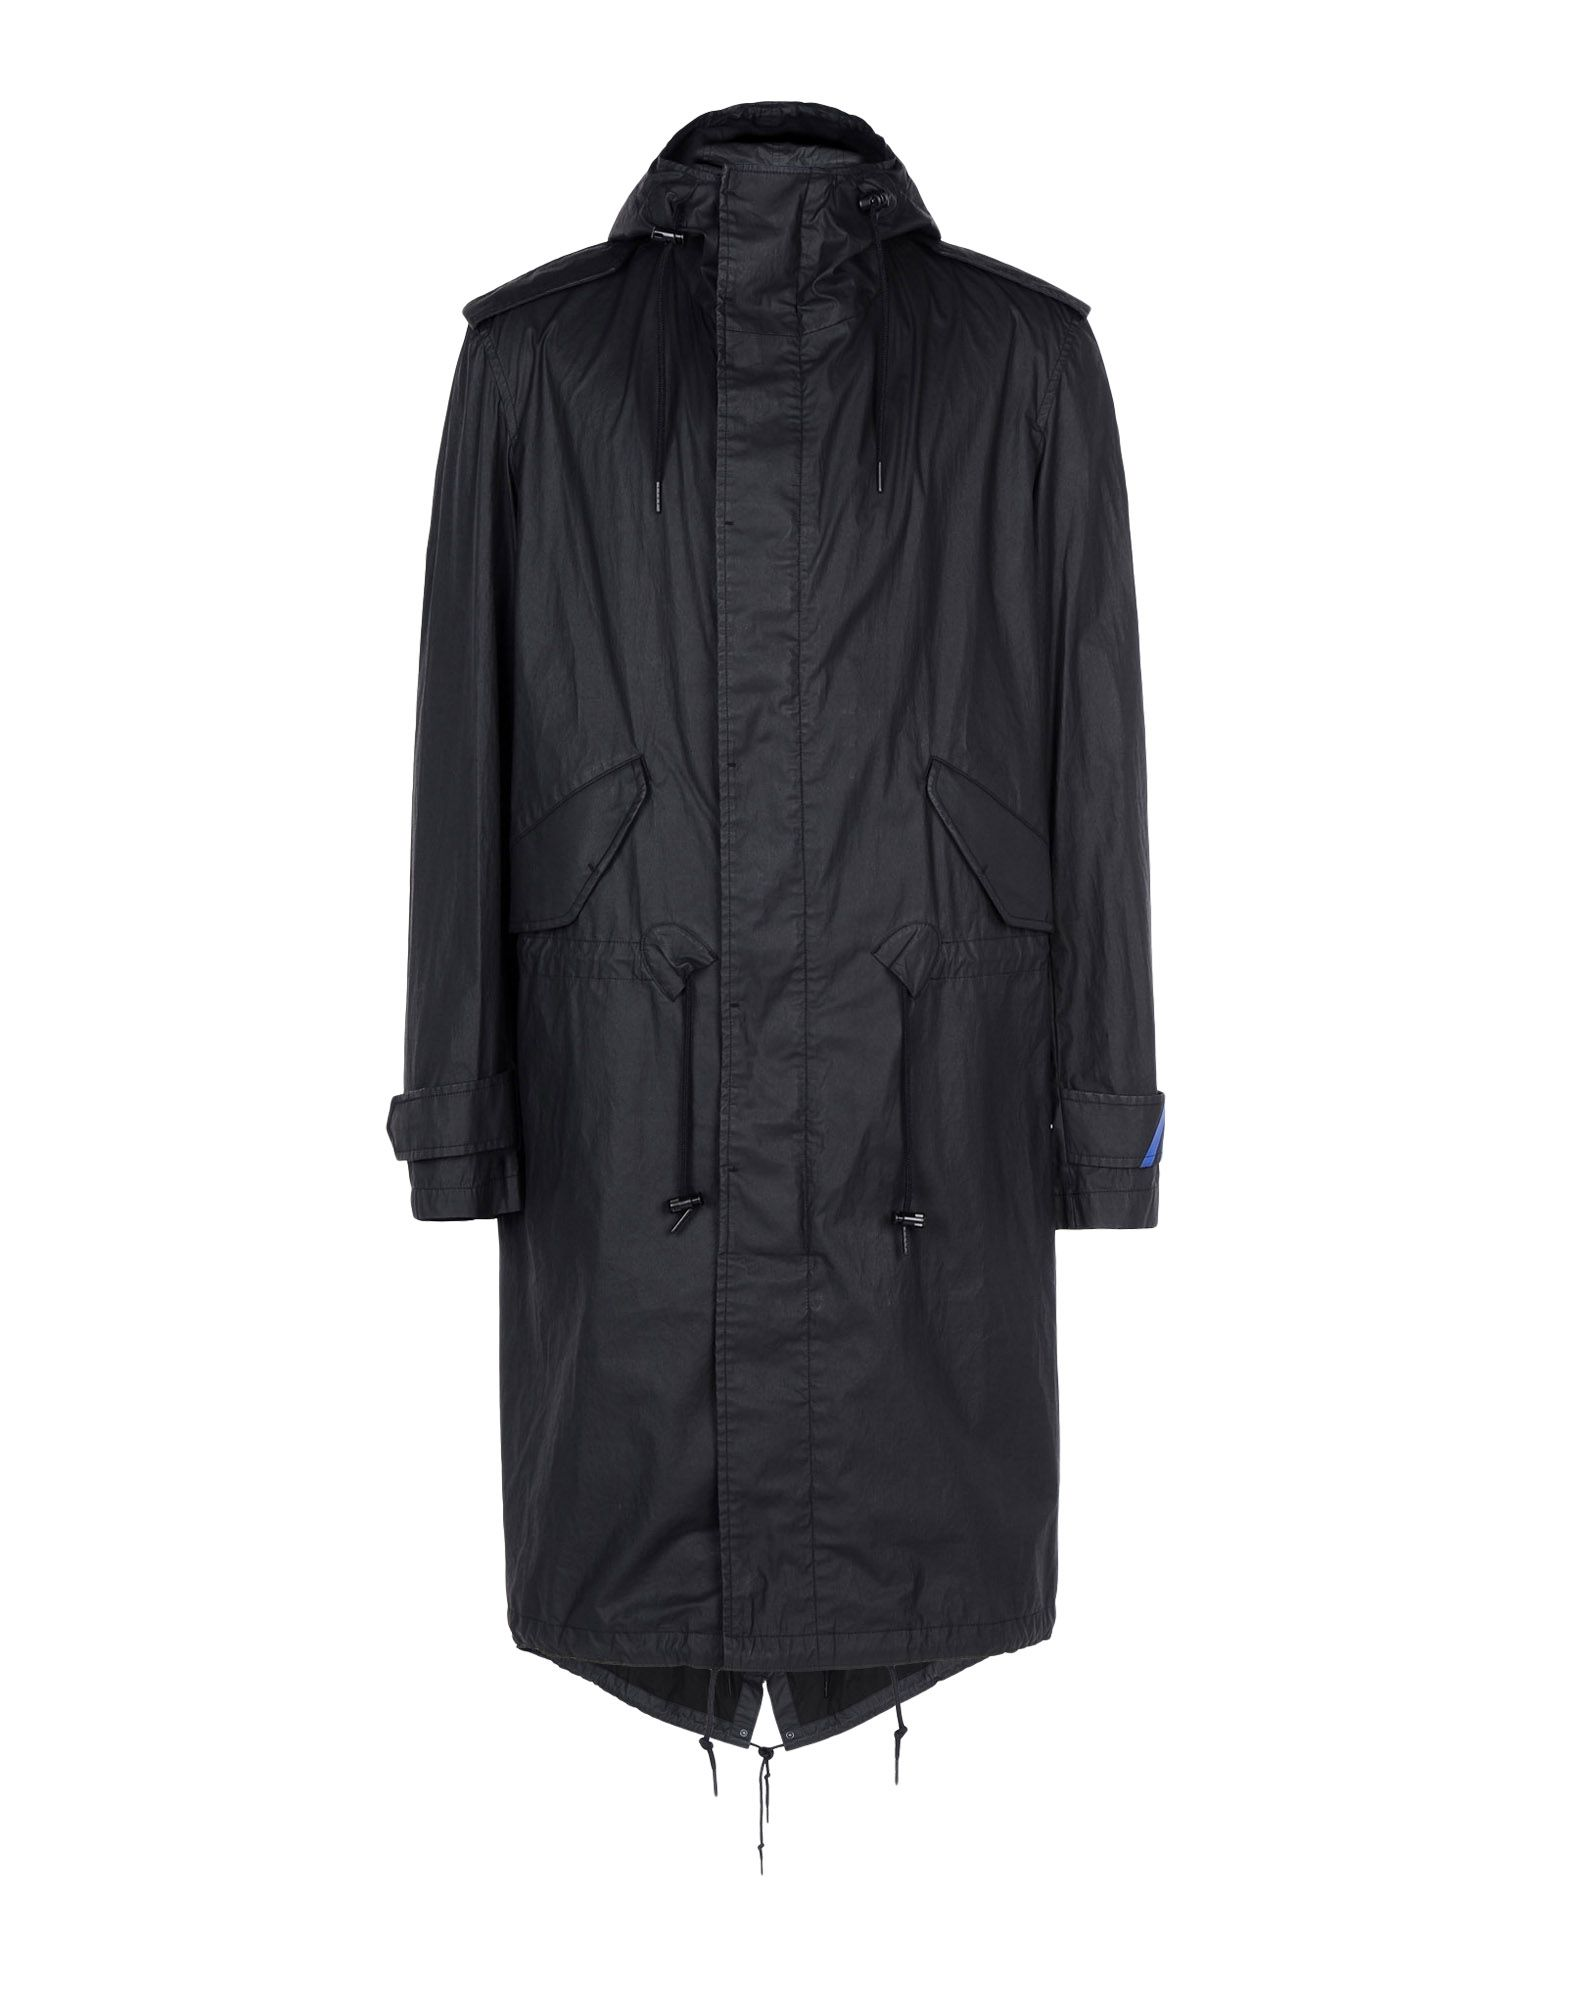 Y 3 FISHTAIL PARKA for Men | Adidas Y-3 Official Store